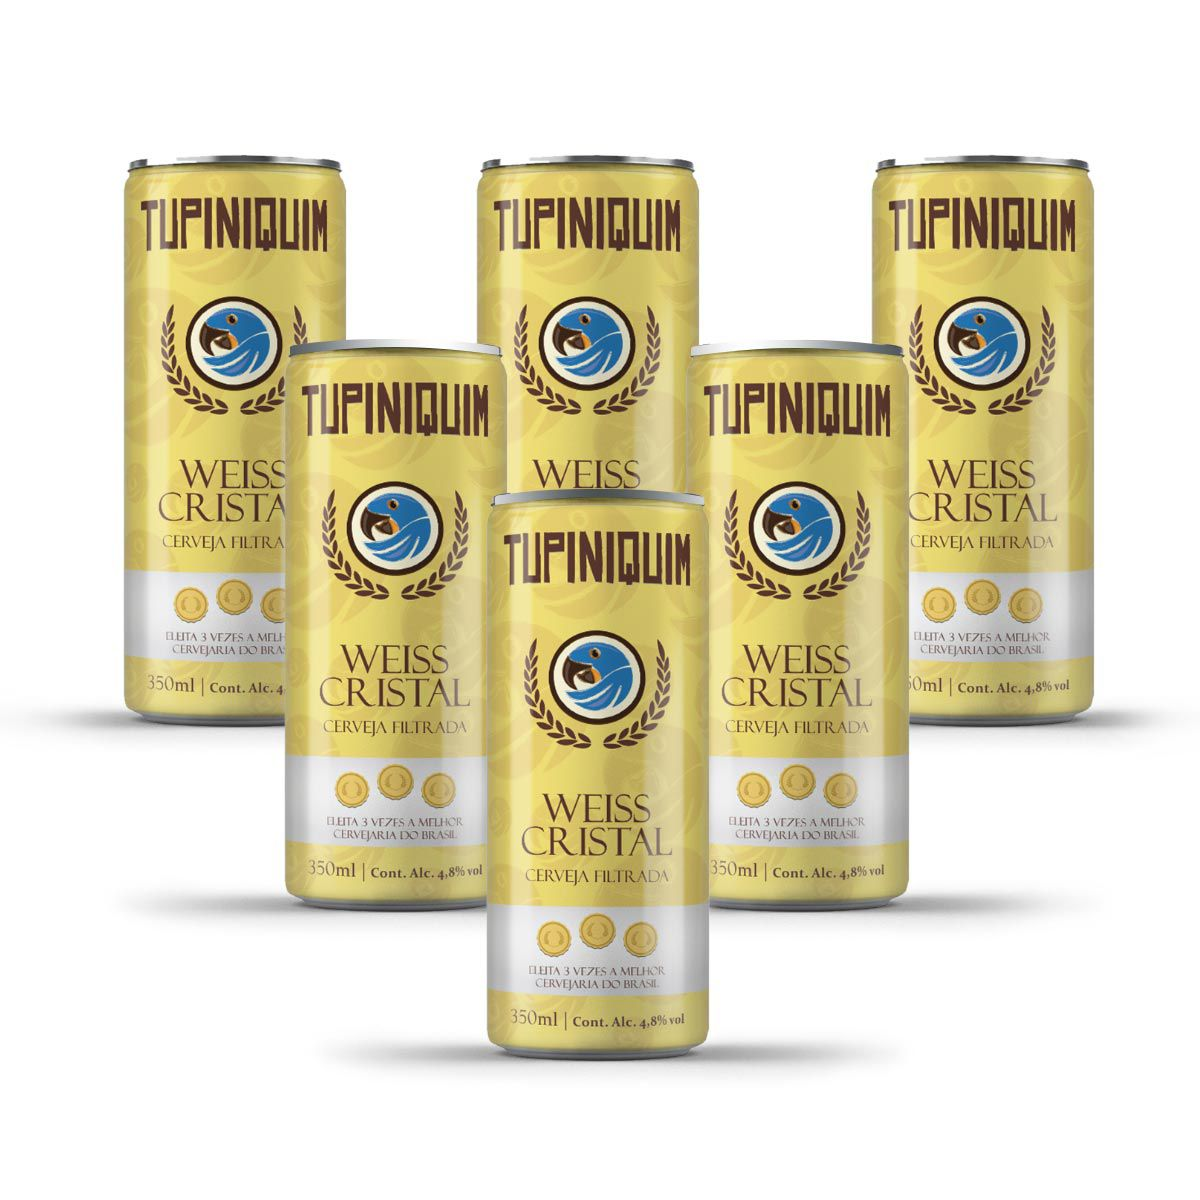 Pack Tupiniquim Weiss Cristal 6 cervejas 350ml